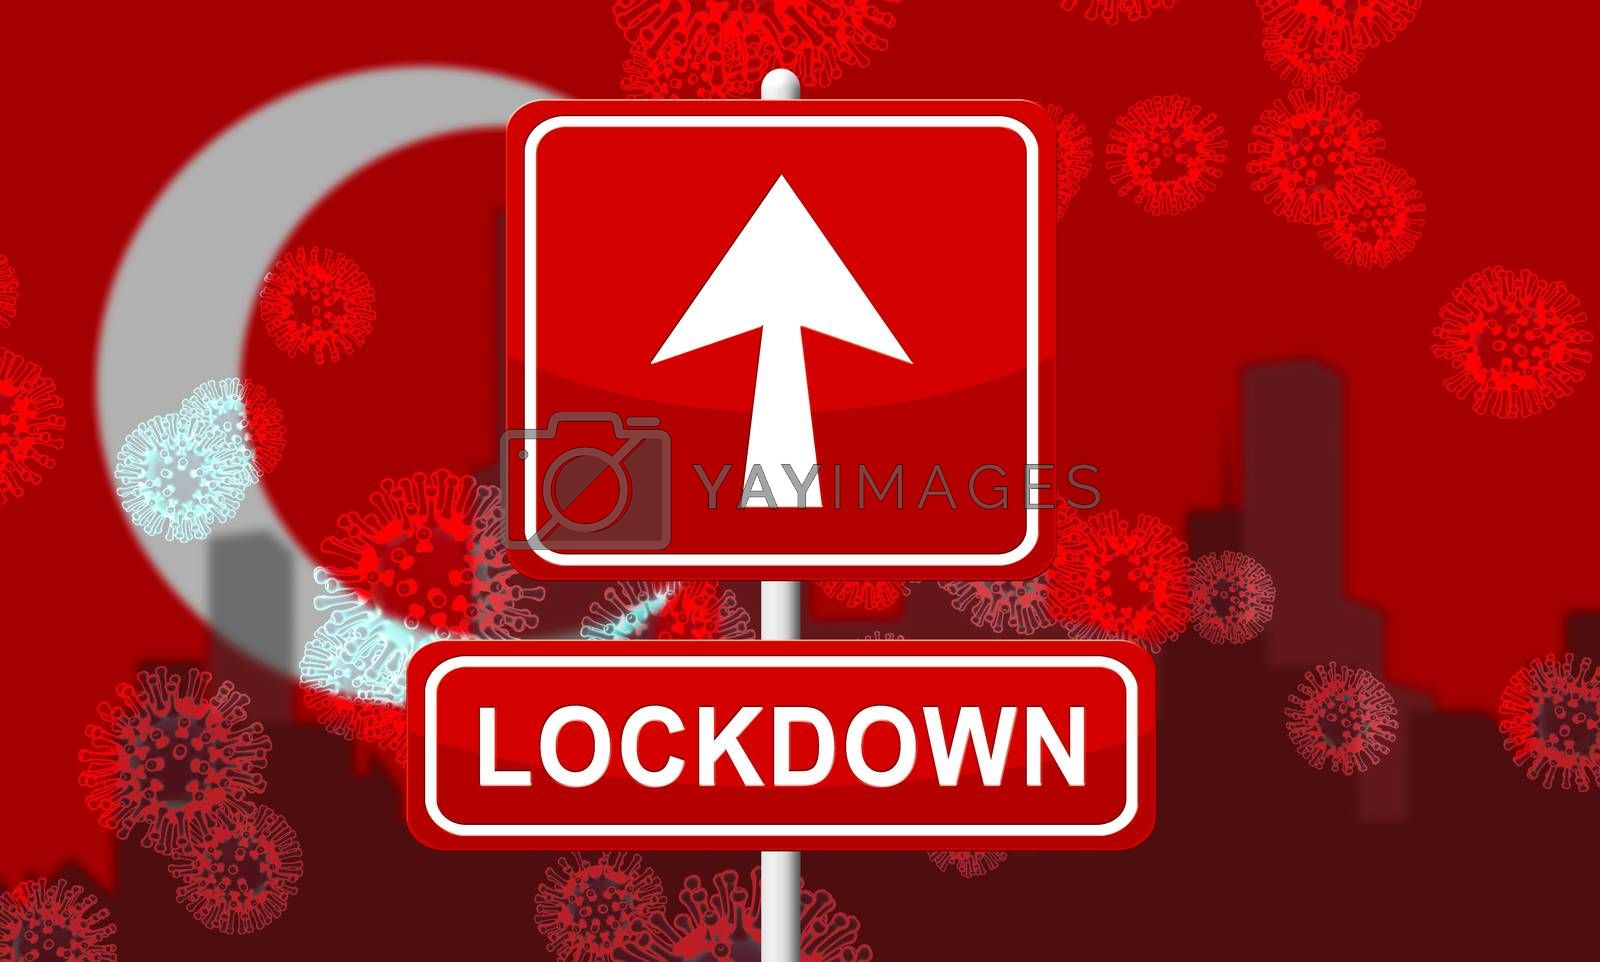 Turkey lockdown preventing covid19 epidemic and outbreak. Covid 19 Turkish precaution to isolate disease infection - 3d Illustration